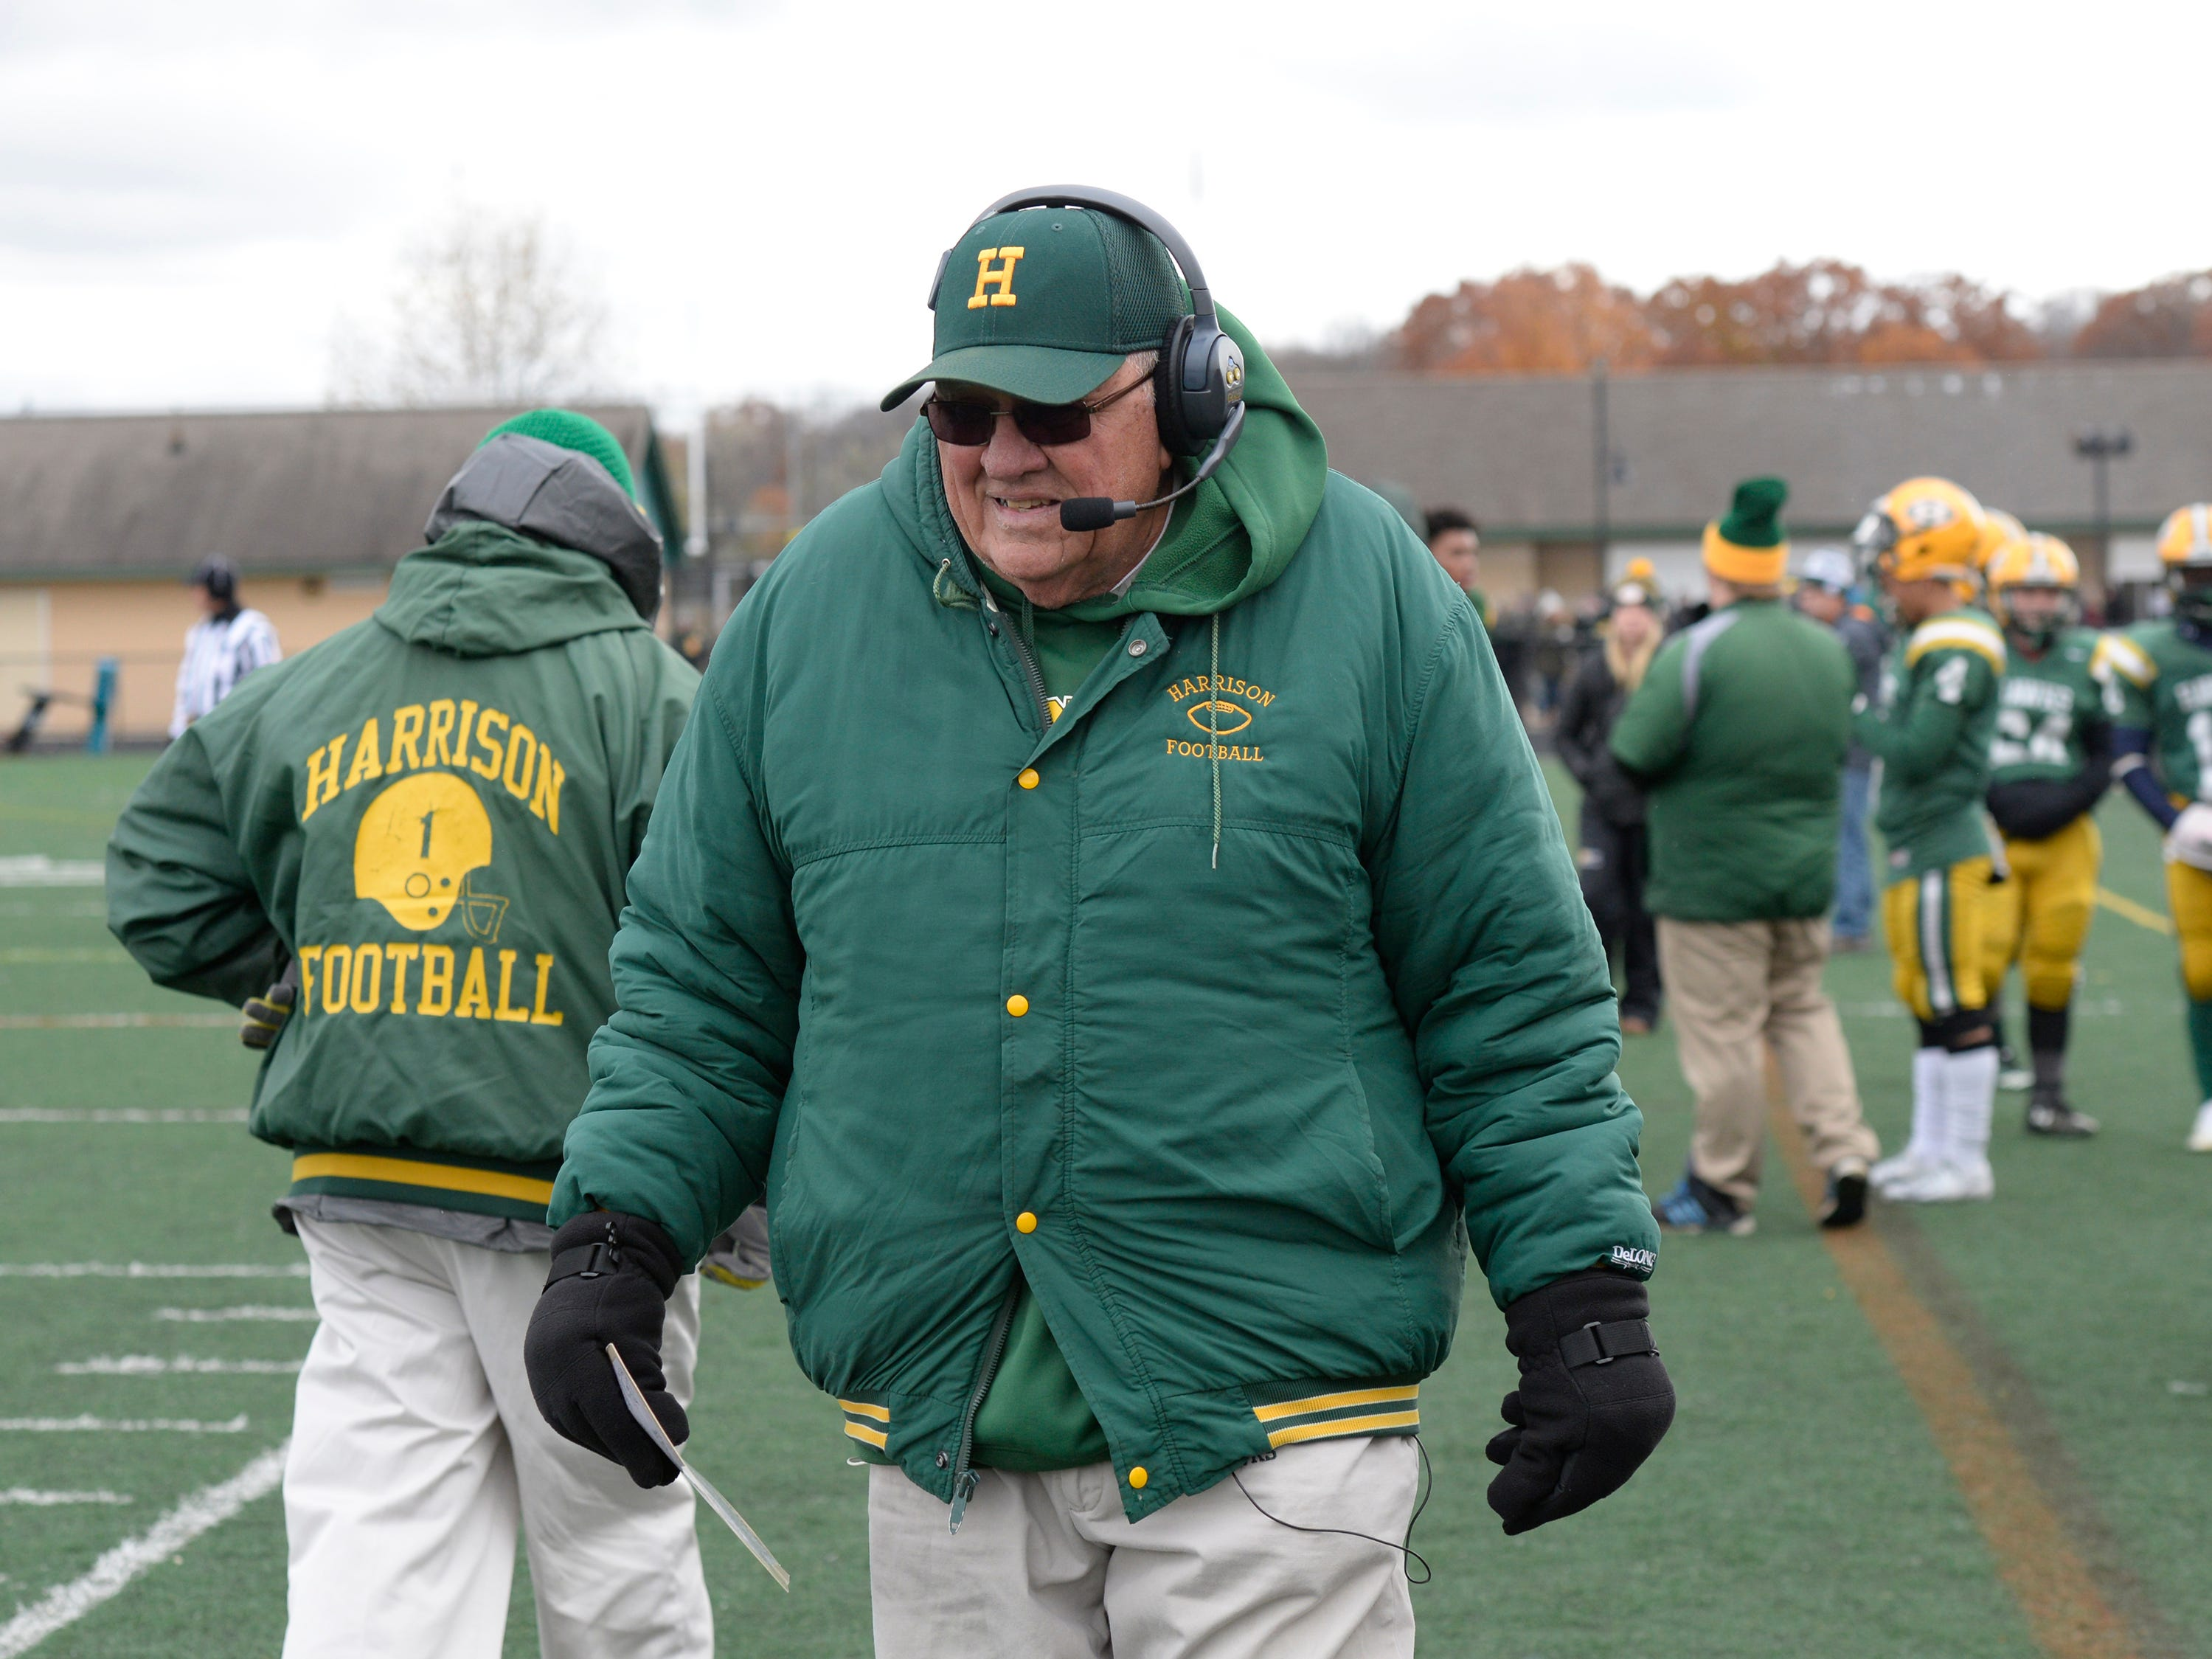 Farmington Harrison Head Coach John Herrington on the sidelines during second half of the Division 4 regional final played at Buller Field Nov. 10, 2018